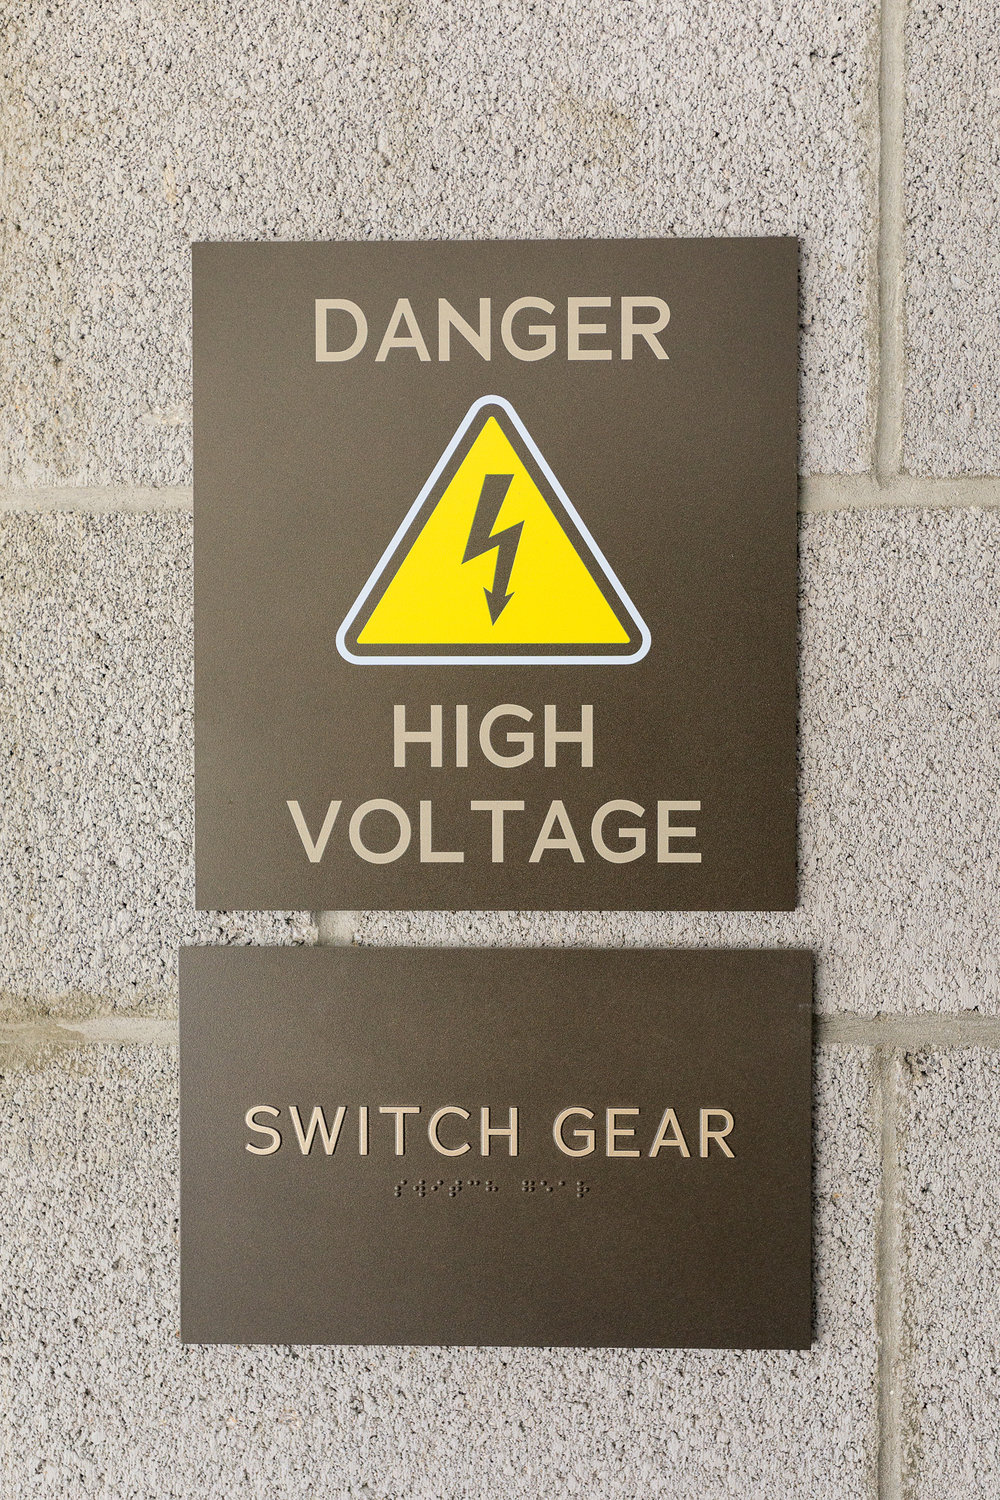 Vertis-Green-Hills_Signage_Required by Building Codes_High Voltage_MG_5248_small 2000 px.jpg